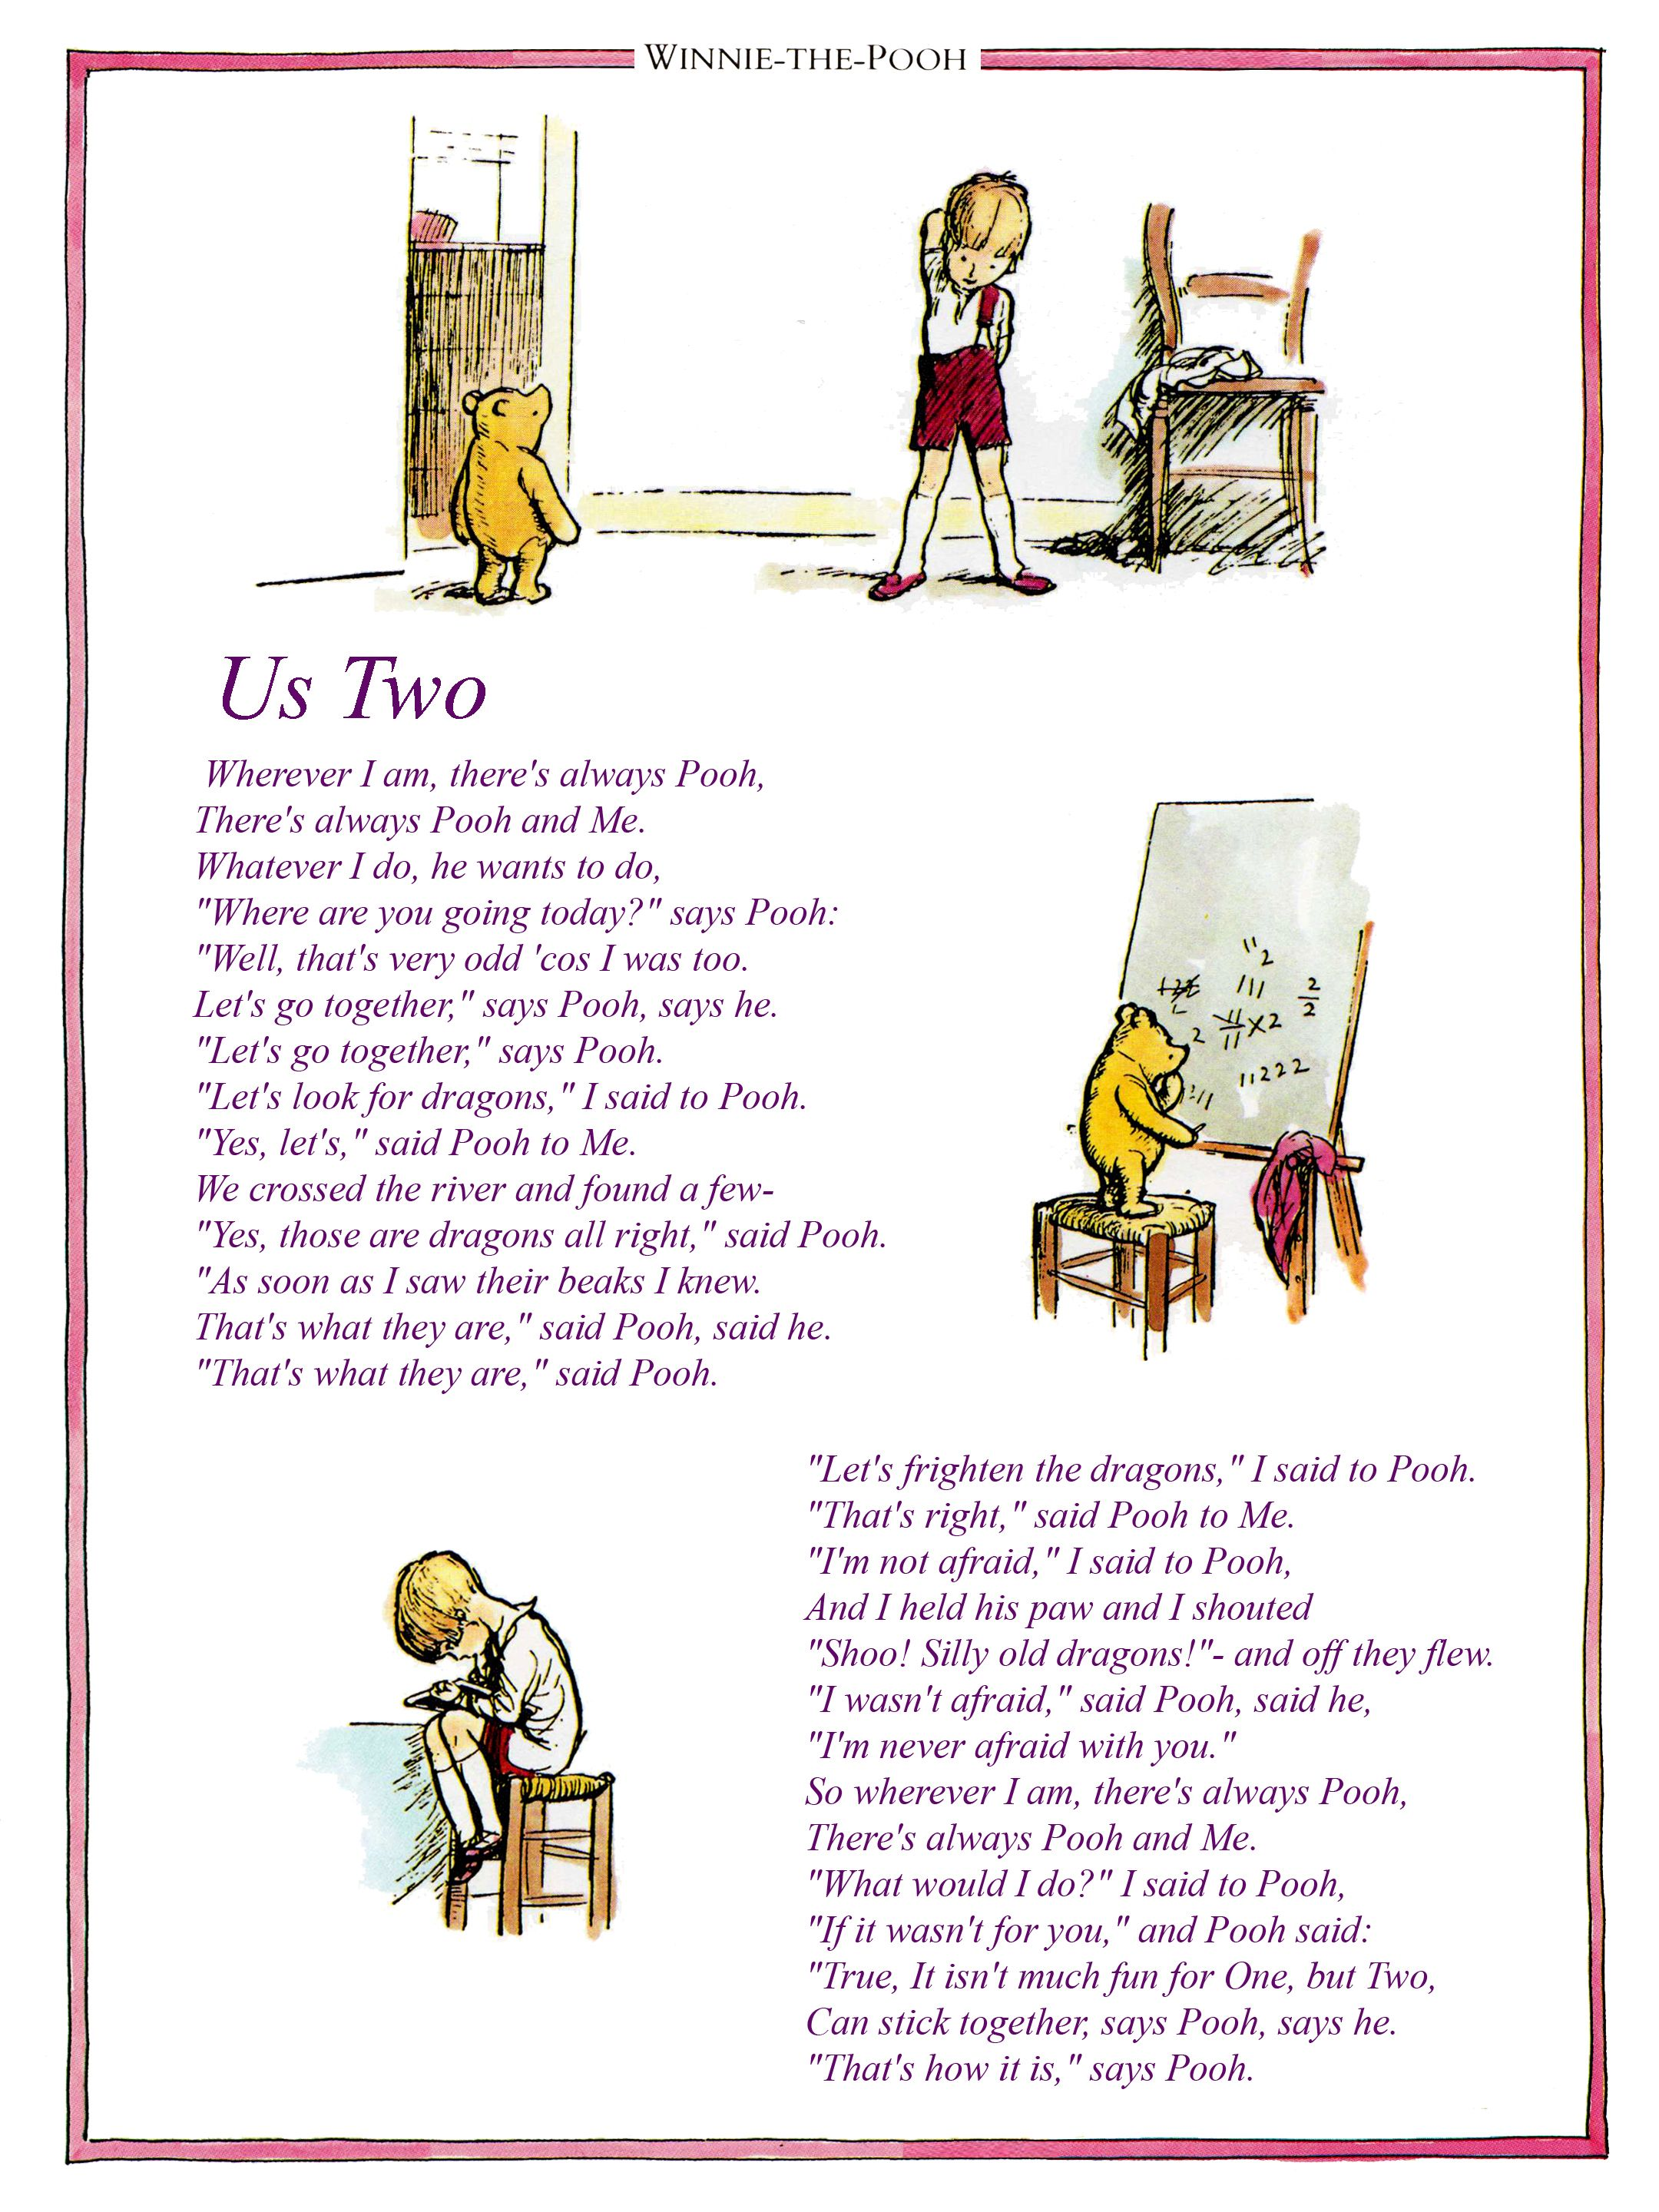 Us Two Poem Print You Can Purchase A Wide Range Of Good Quality Clic Winnie